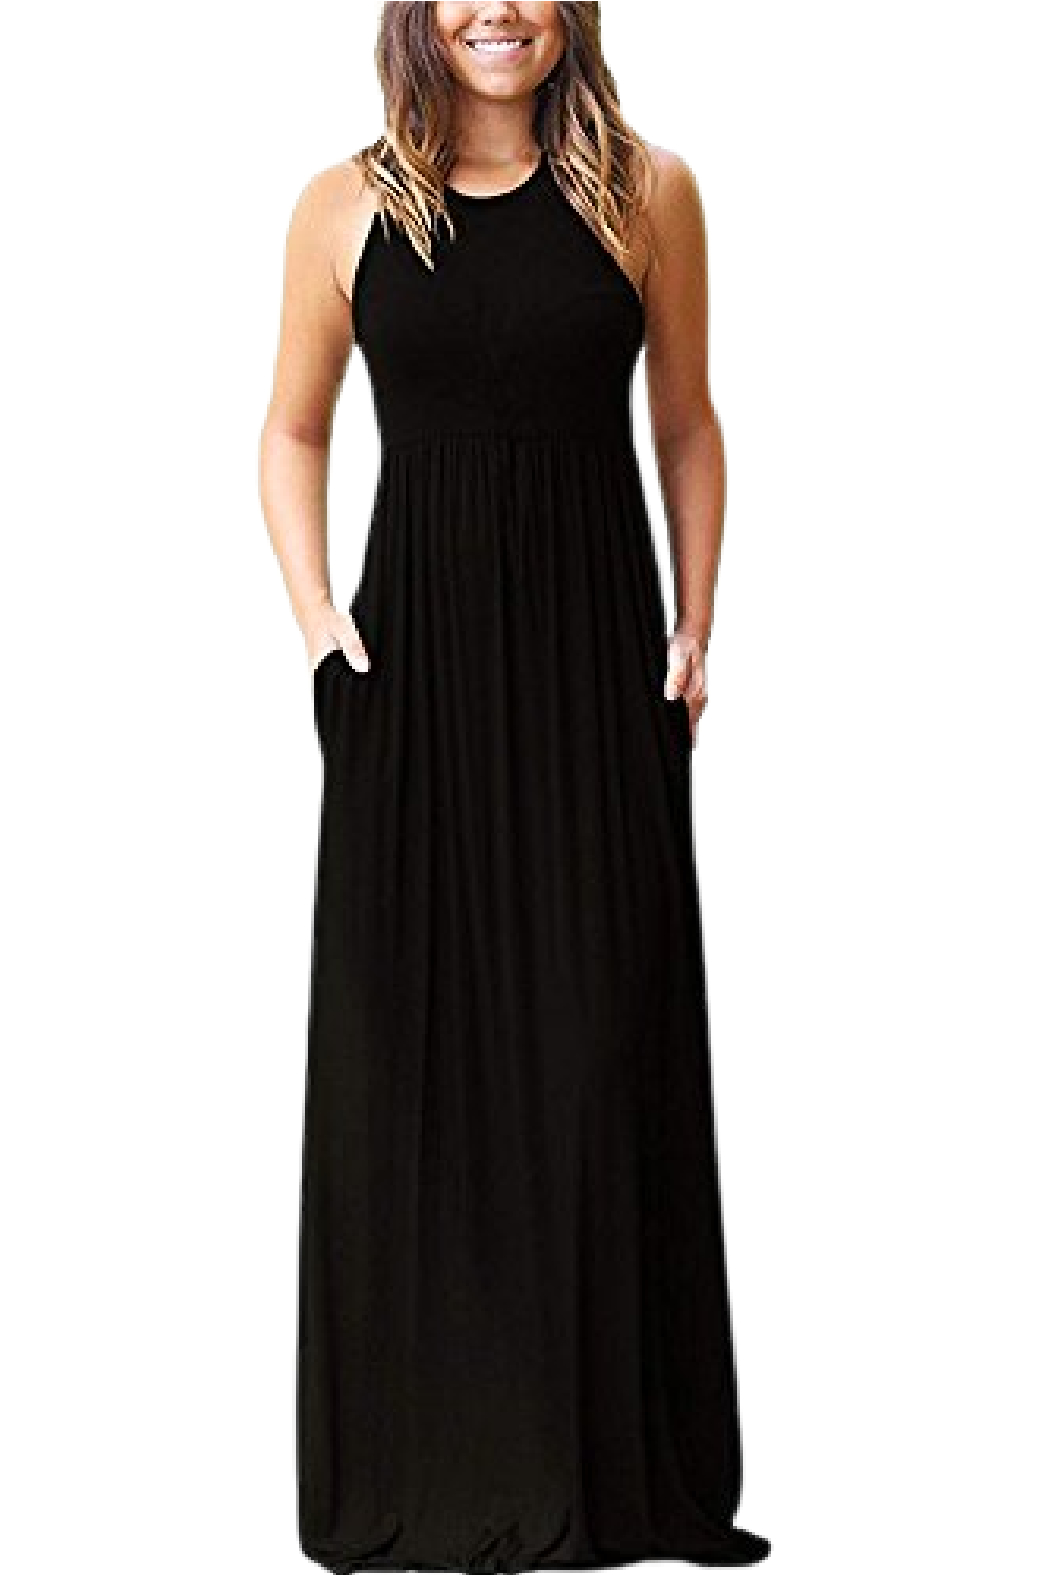 Petunias Black Tee Knit Maxi Dress - Front Cropped Image